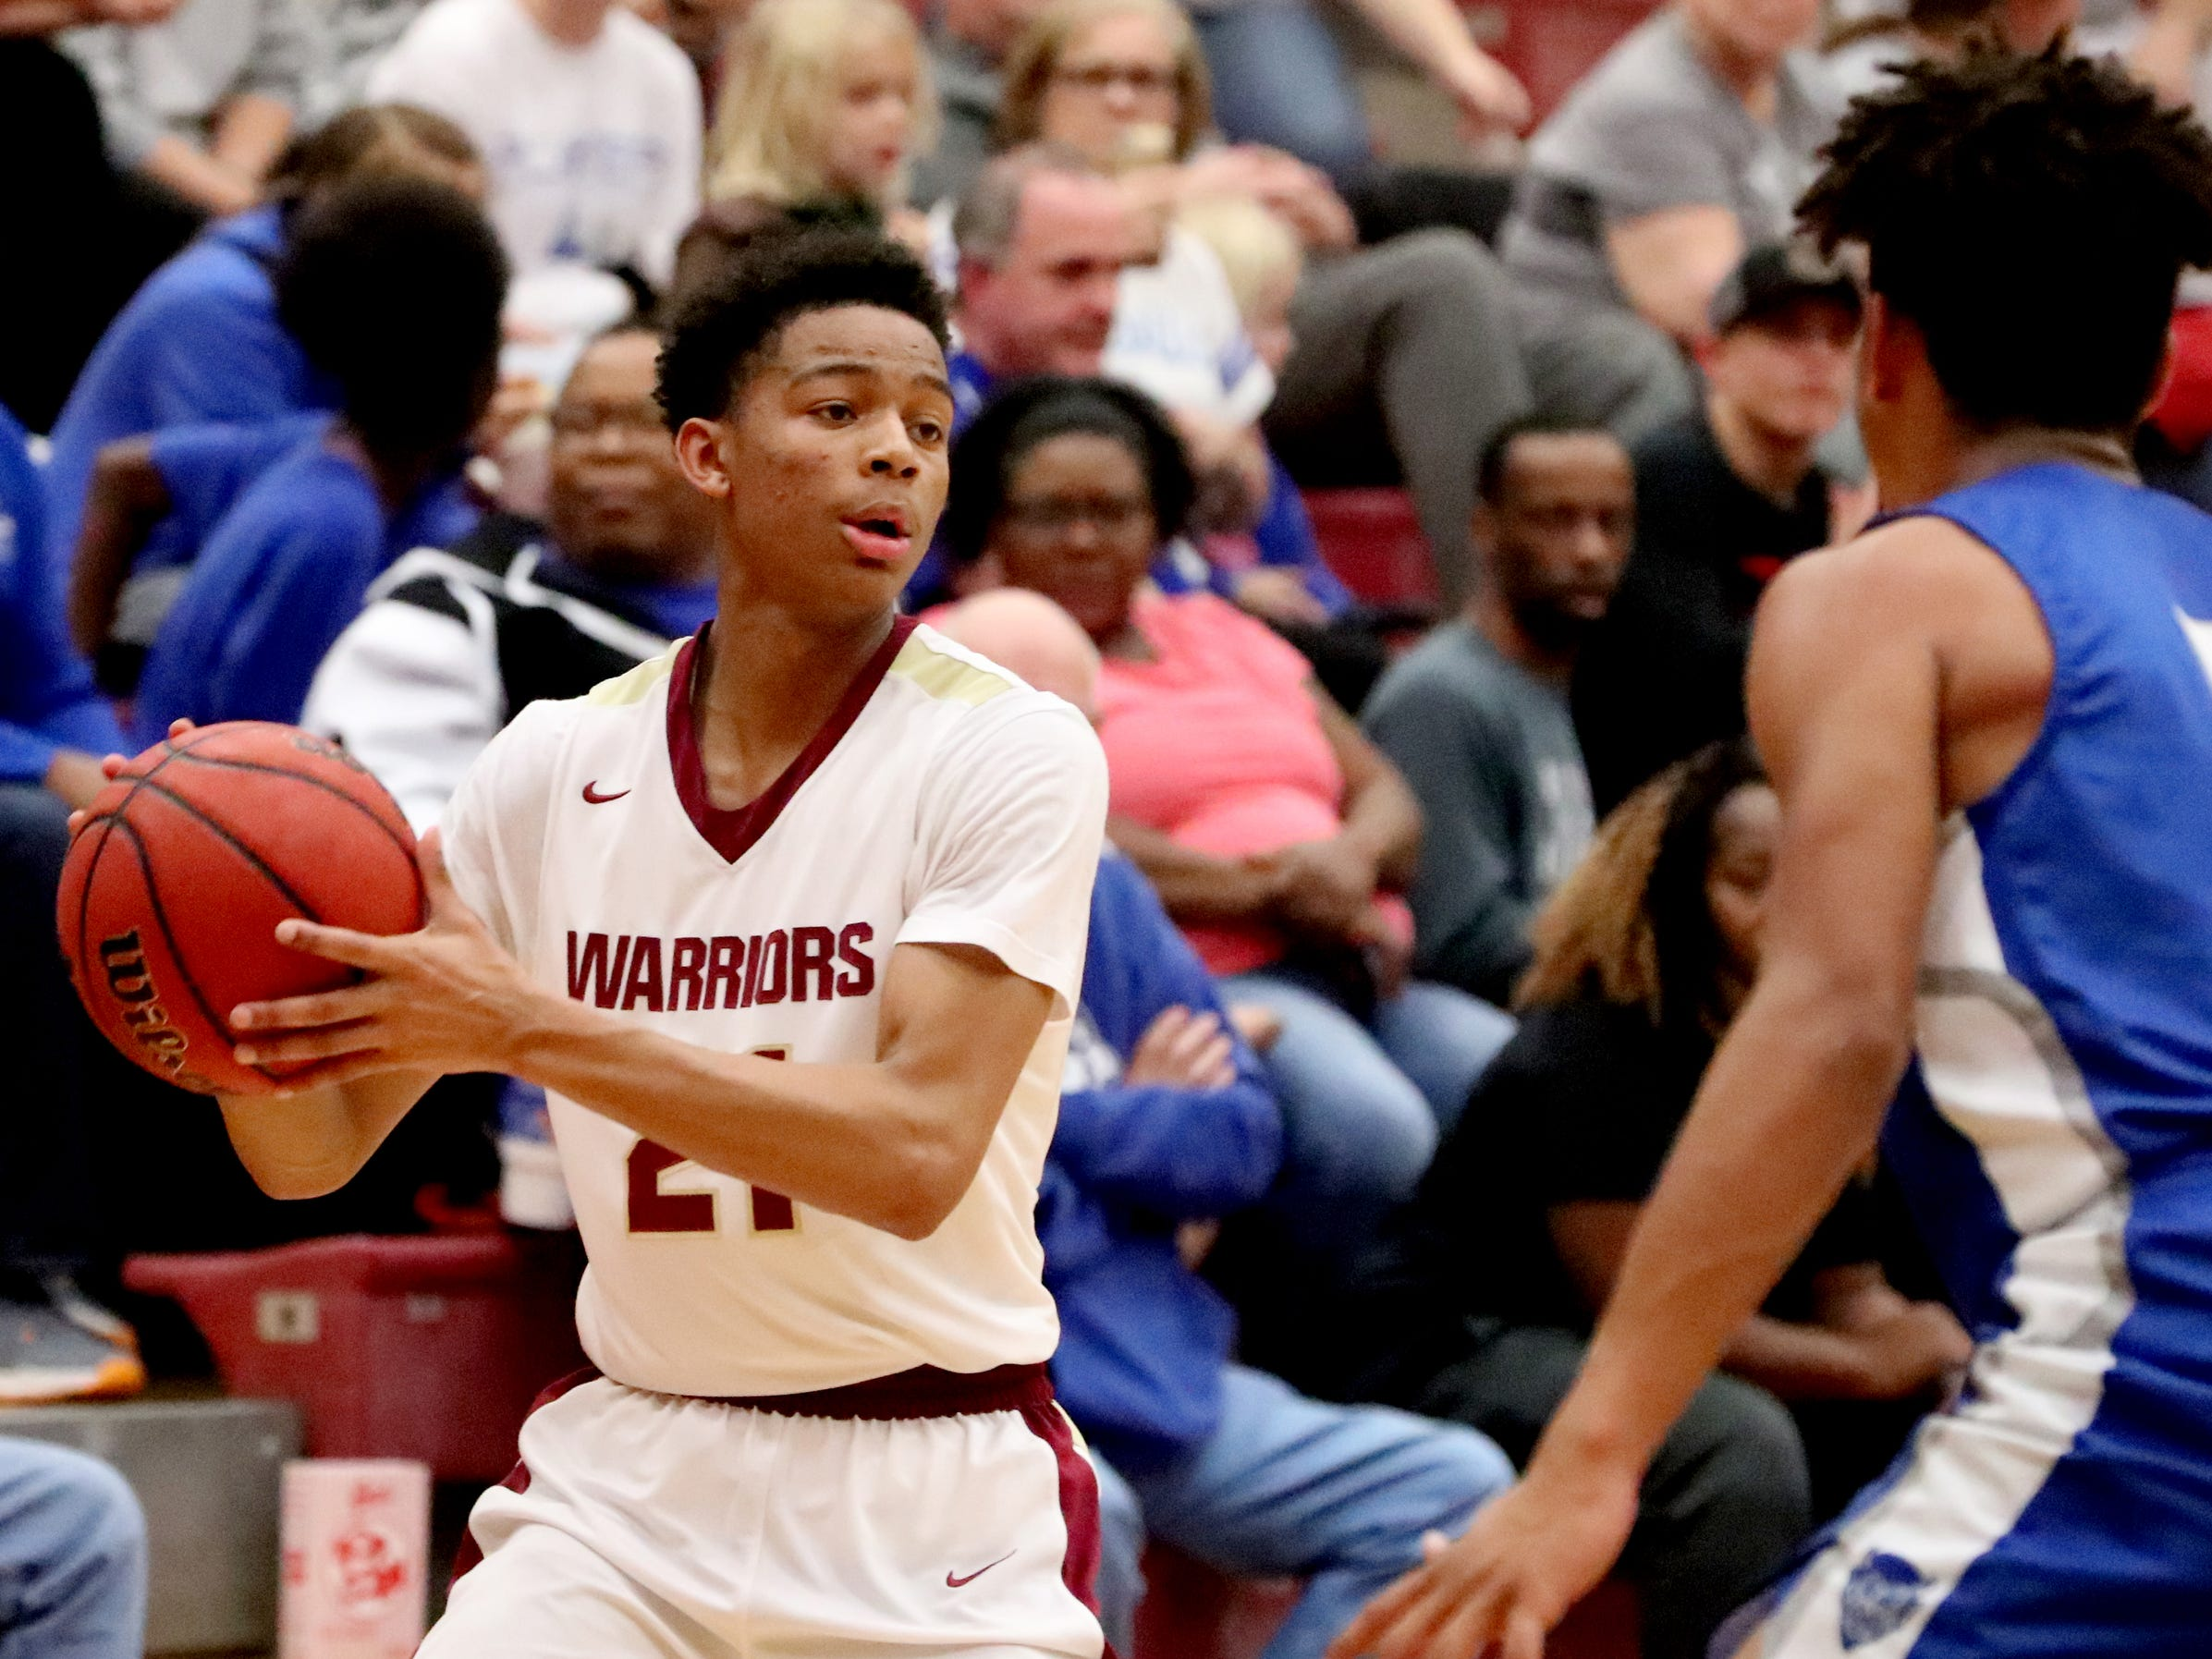 RiverdaleÕs Rashaad Thompson (21) looks for a player to pass to as Lebanon's Jeremiah Hastings (5) guards him during the game at Riverdale on Friday, Nov. 30, 2018.